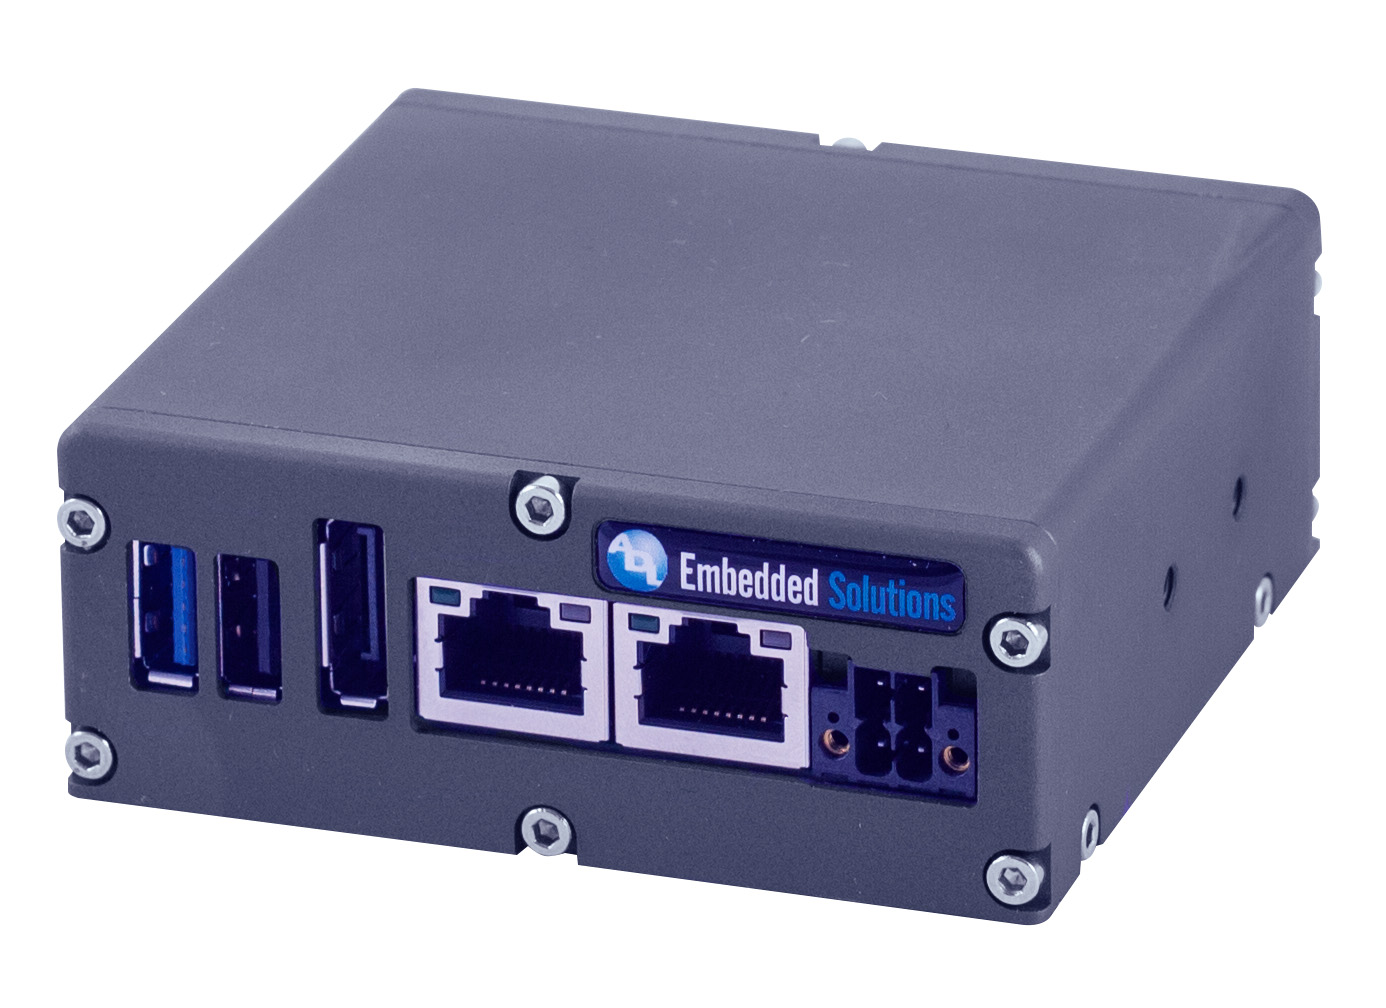 "ADL Embedded Solutions, Inc. Announces ADLEPC-1500 Full-Featured, Ultra-Compact 3.4"" x 3.2"" Embedded PC"